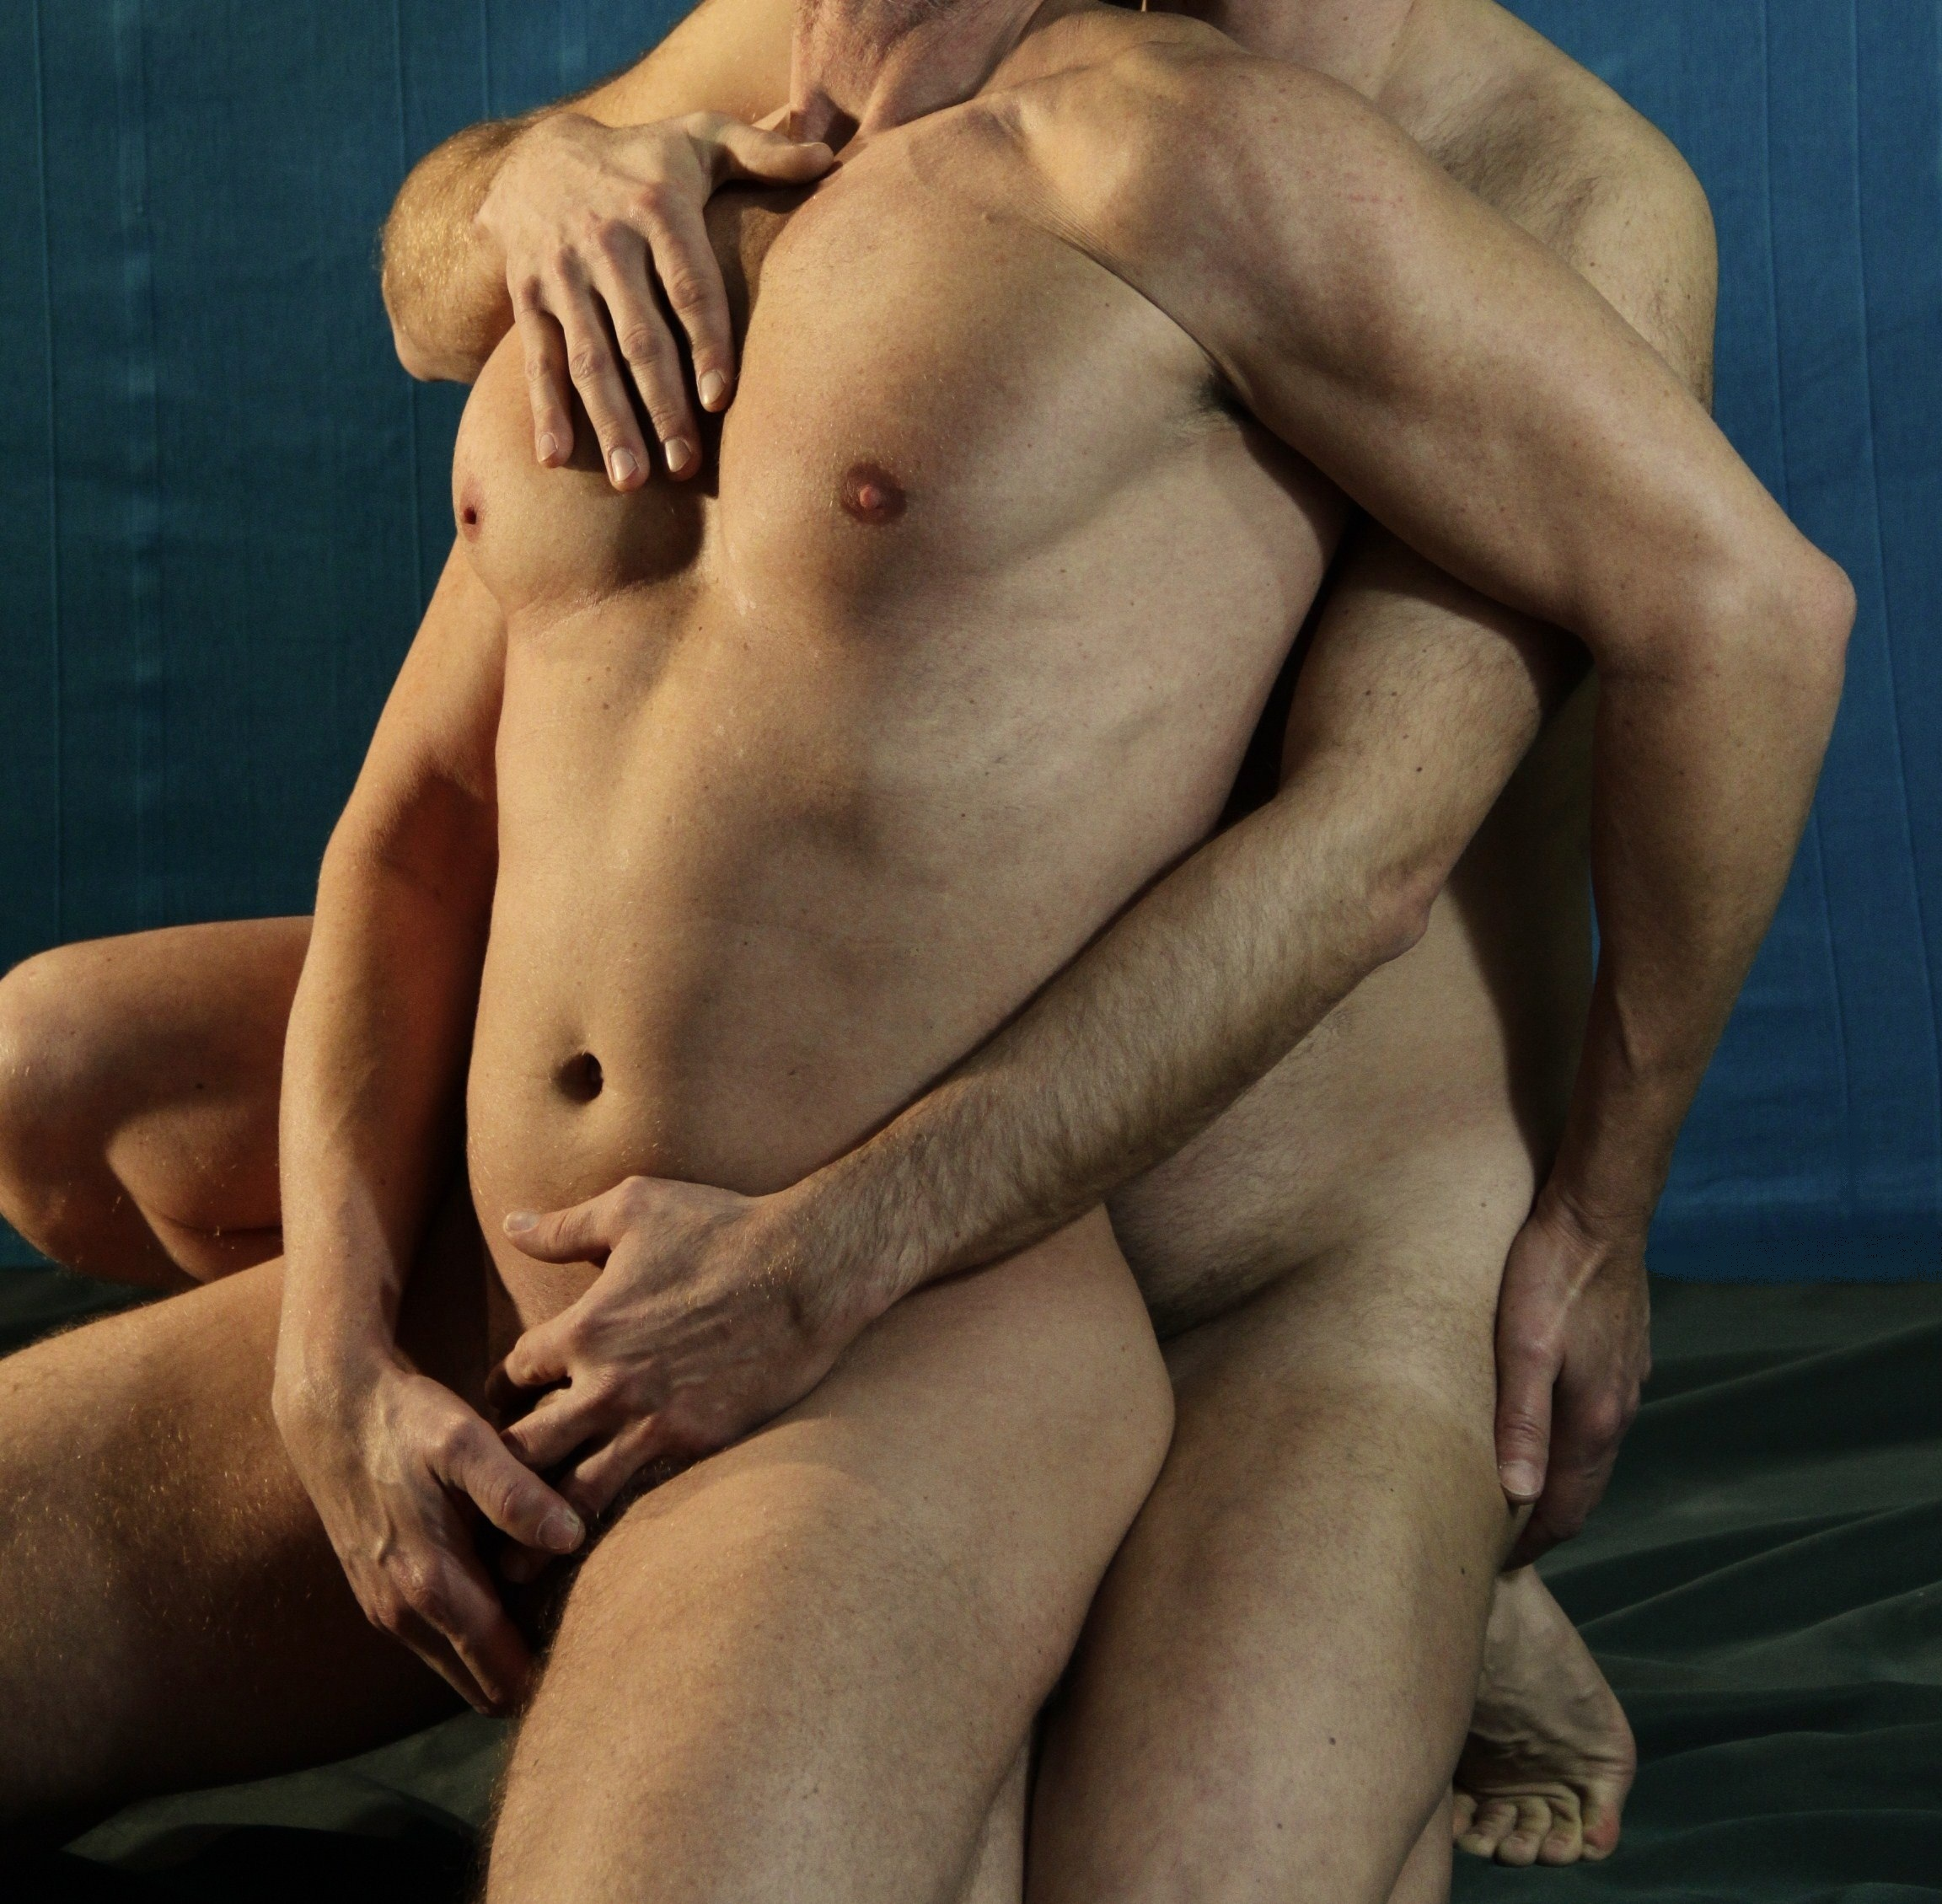 Gays doing sex with doctors movietures hot 8